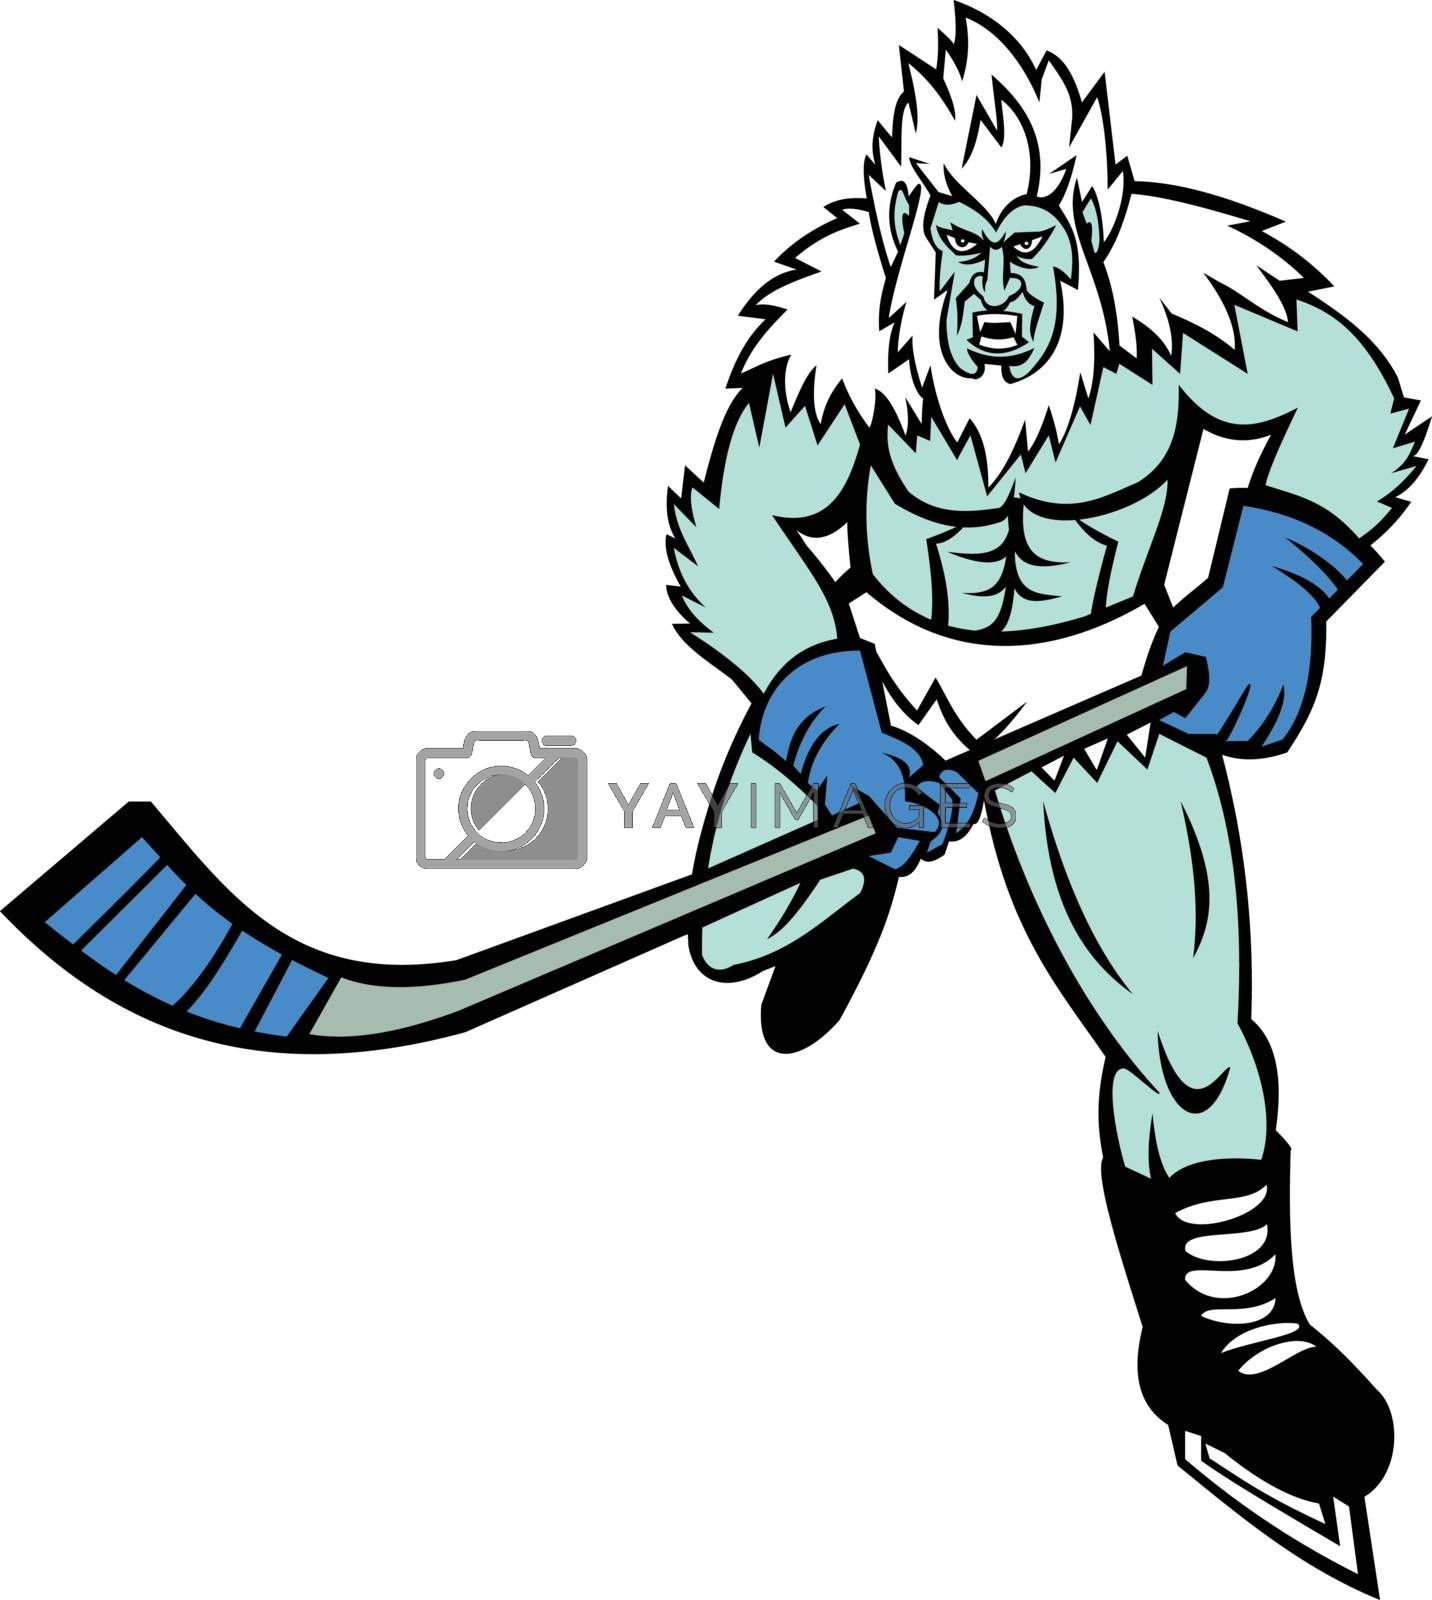 Mascot icon illustration of an angry Yeti or Abominable Snowman, a folkloric ape-like creature, with hockey stick playing ice hockey viewed from front on isolated background in retro style.